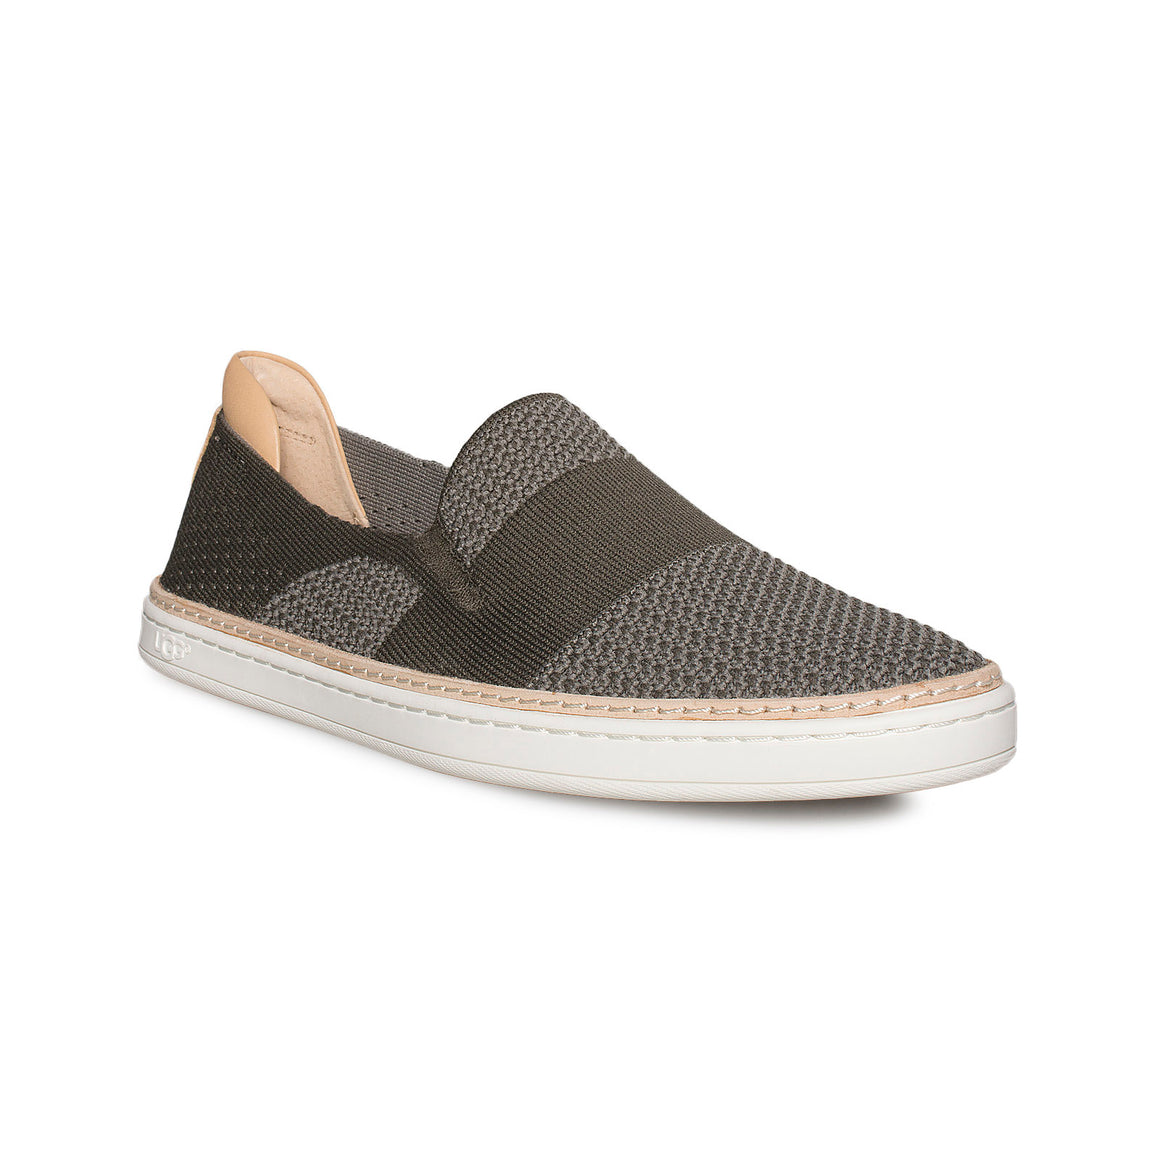 UGG Sammy Navy Slate Shoes - Women's